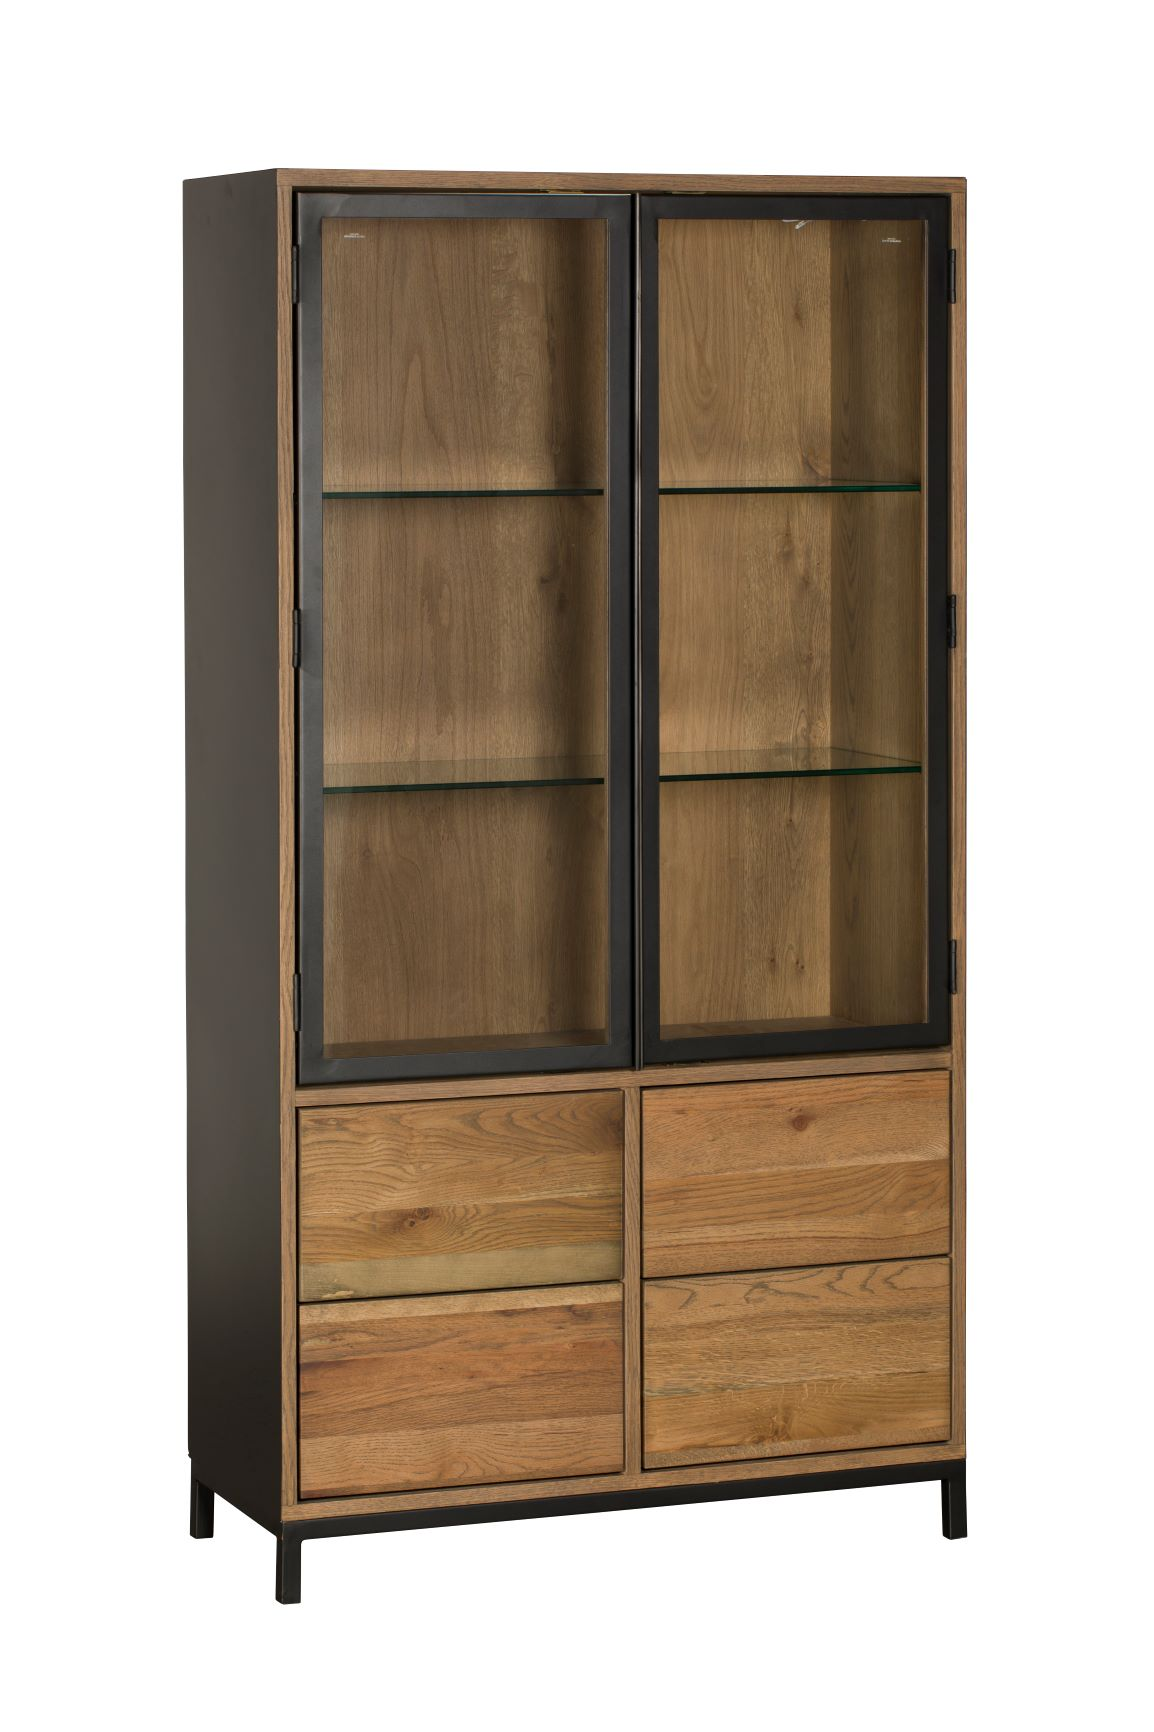 CARTER DISPLAY CABINET L90cm x D38cm x H170cm